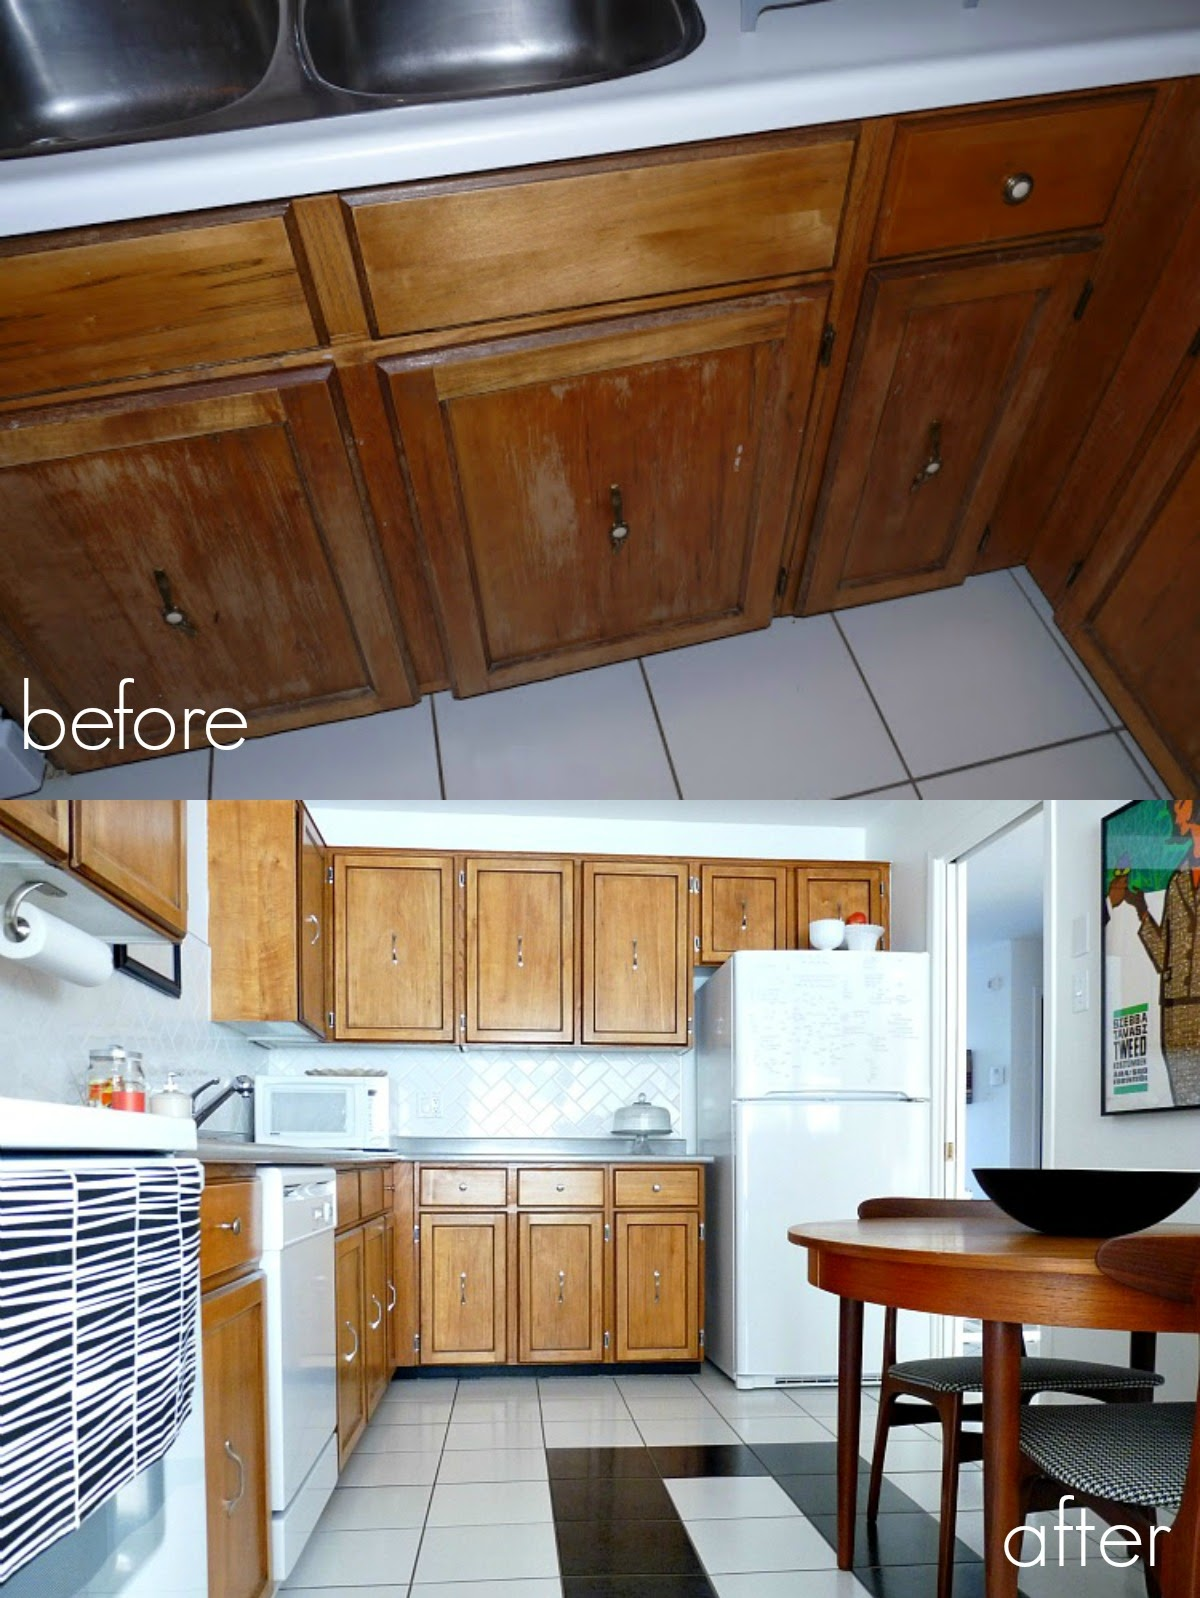 How to Re-Varnish Cabinets without Changing Color